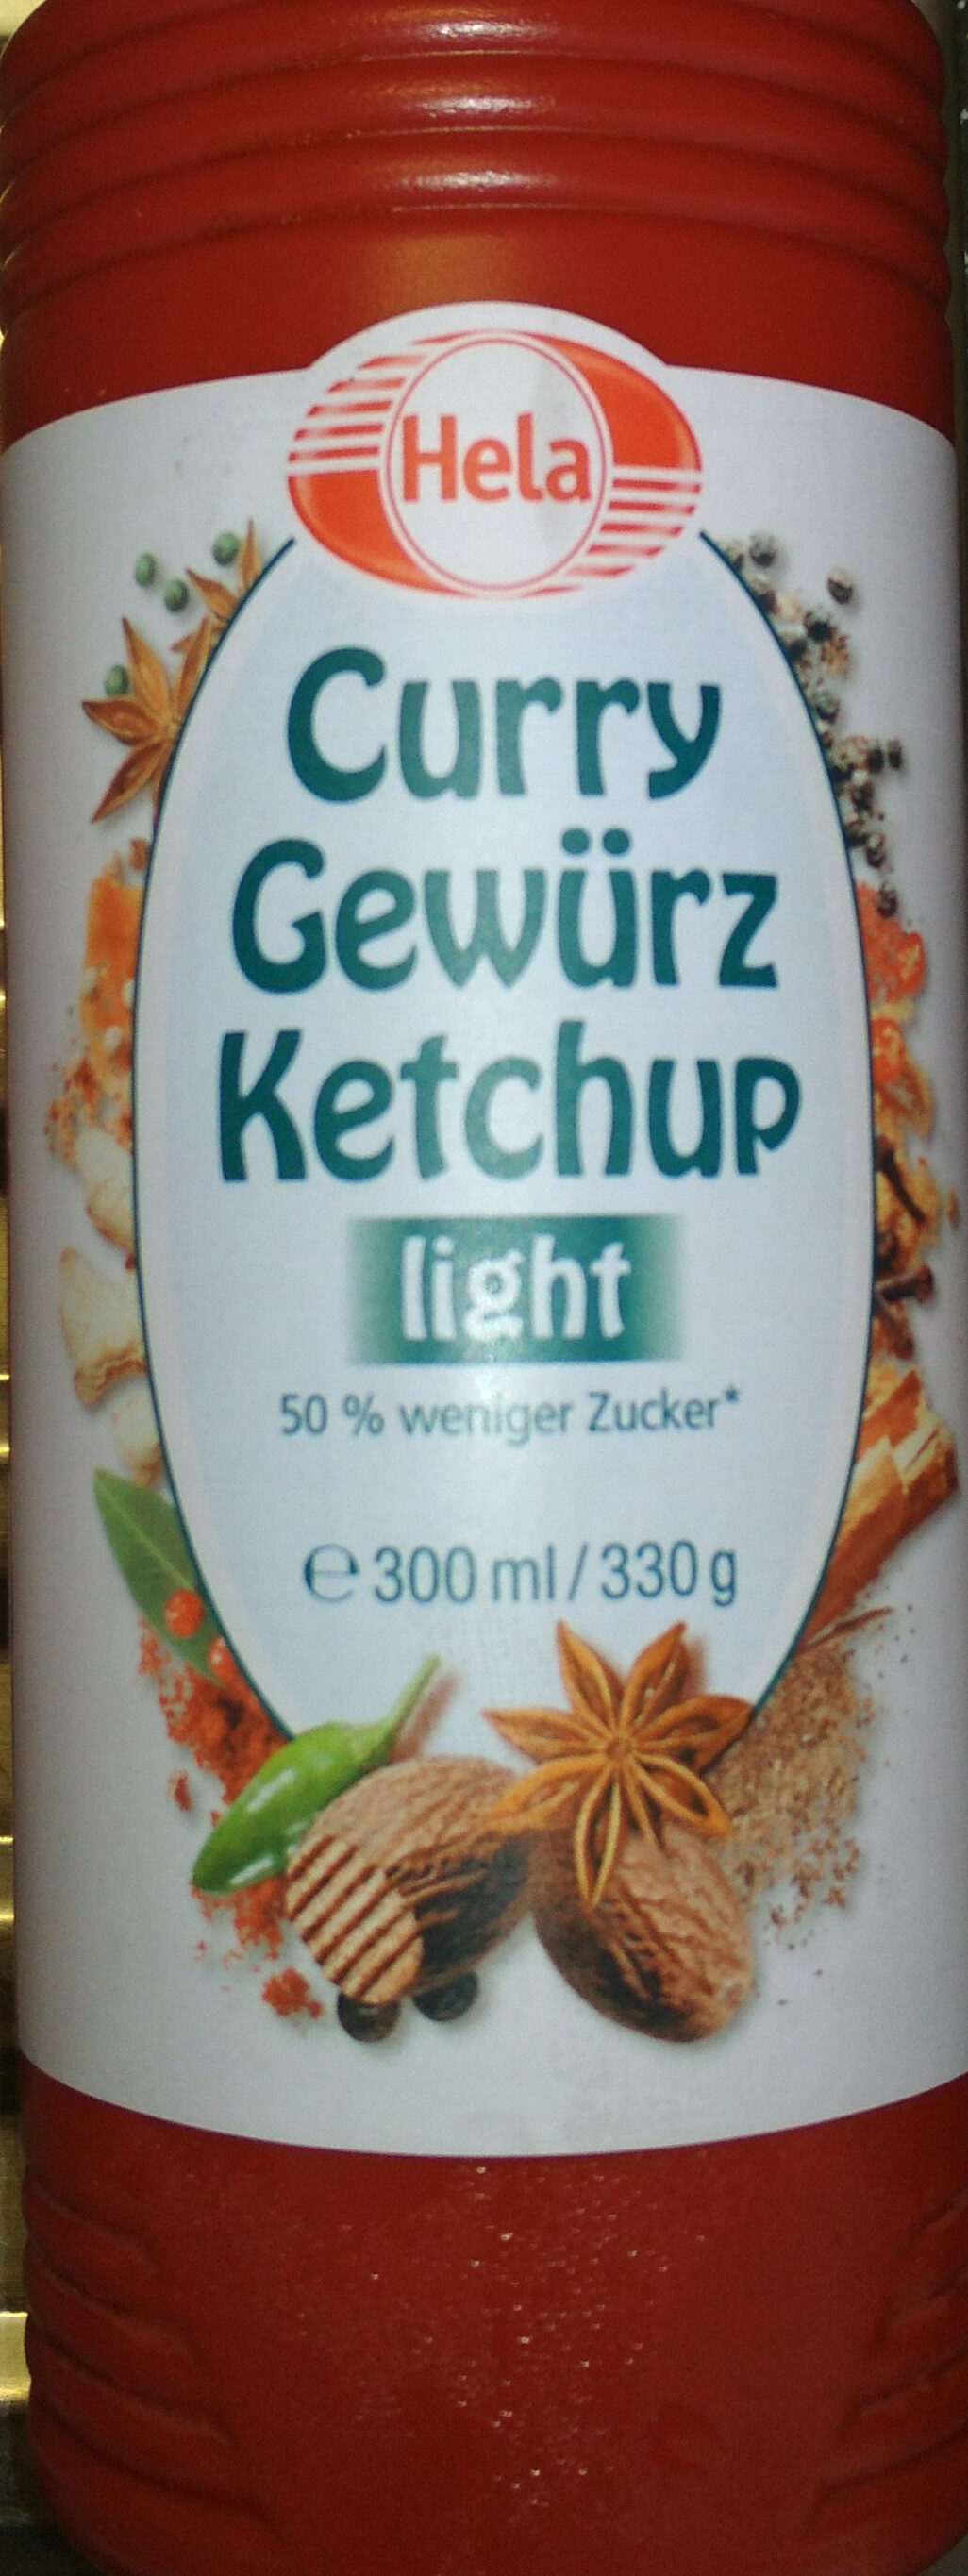 Curry Gewürz Ketchup light - Prodotto - de